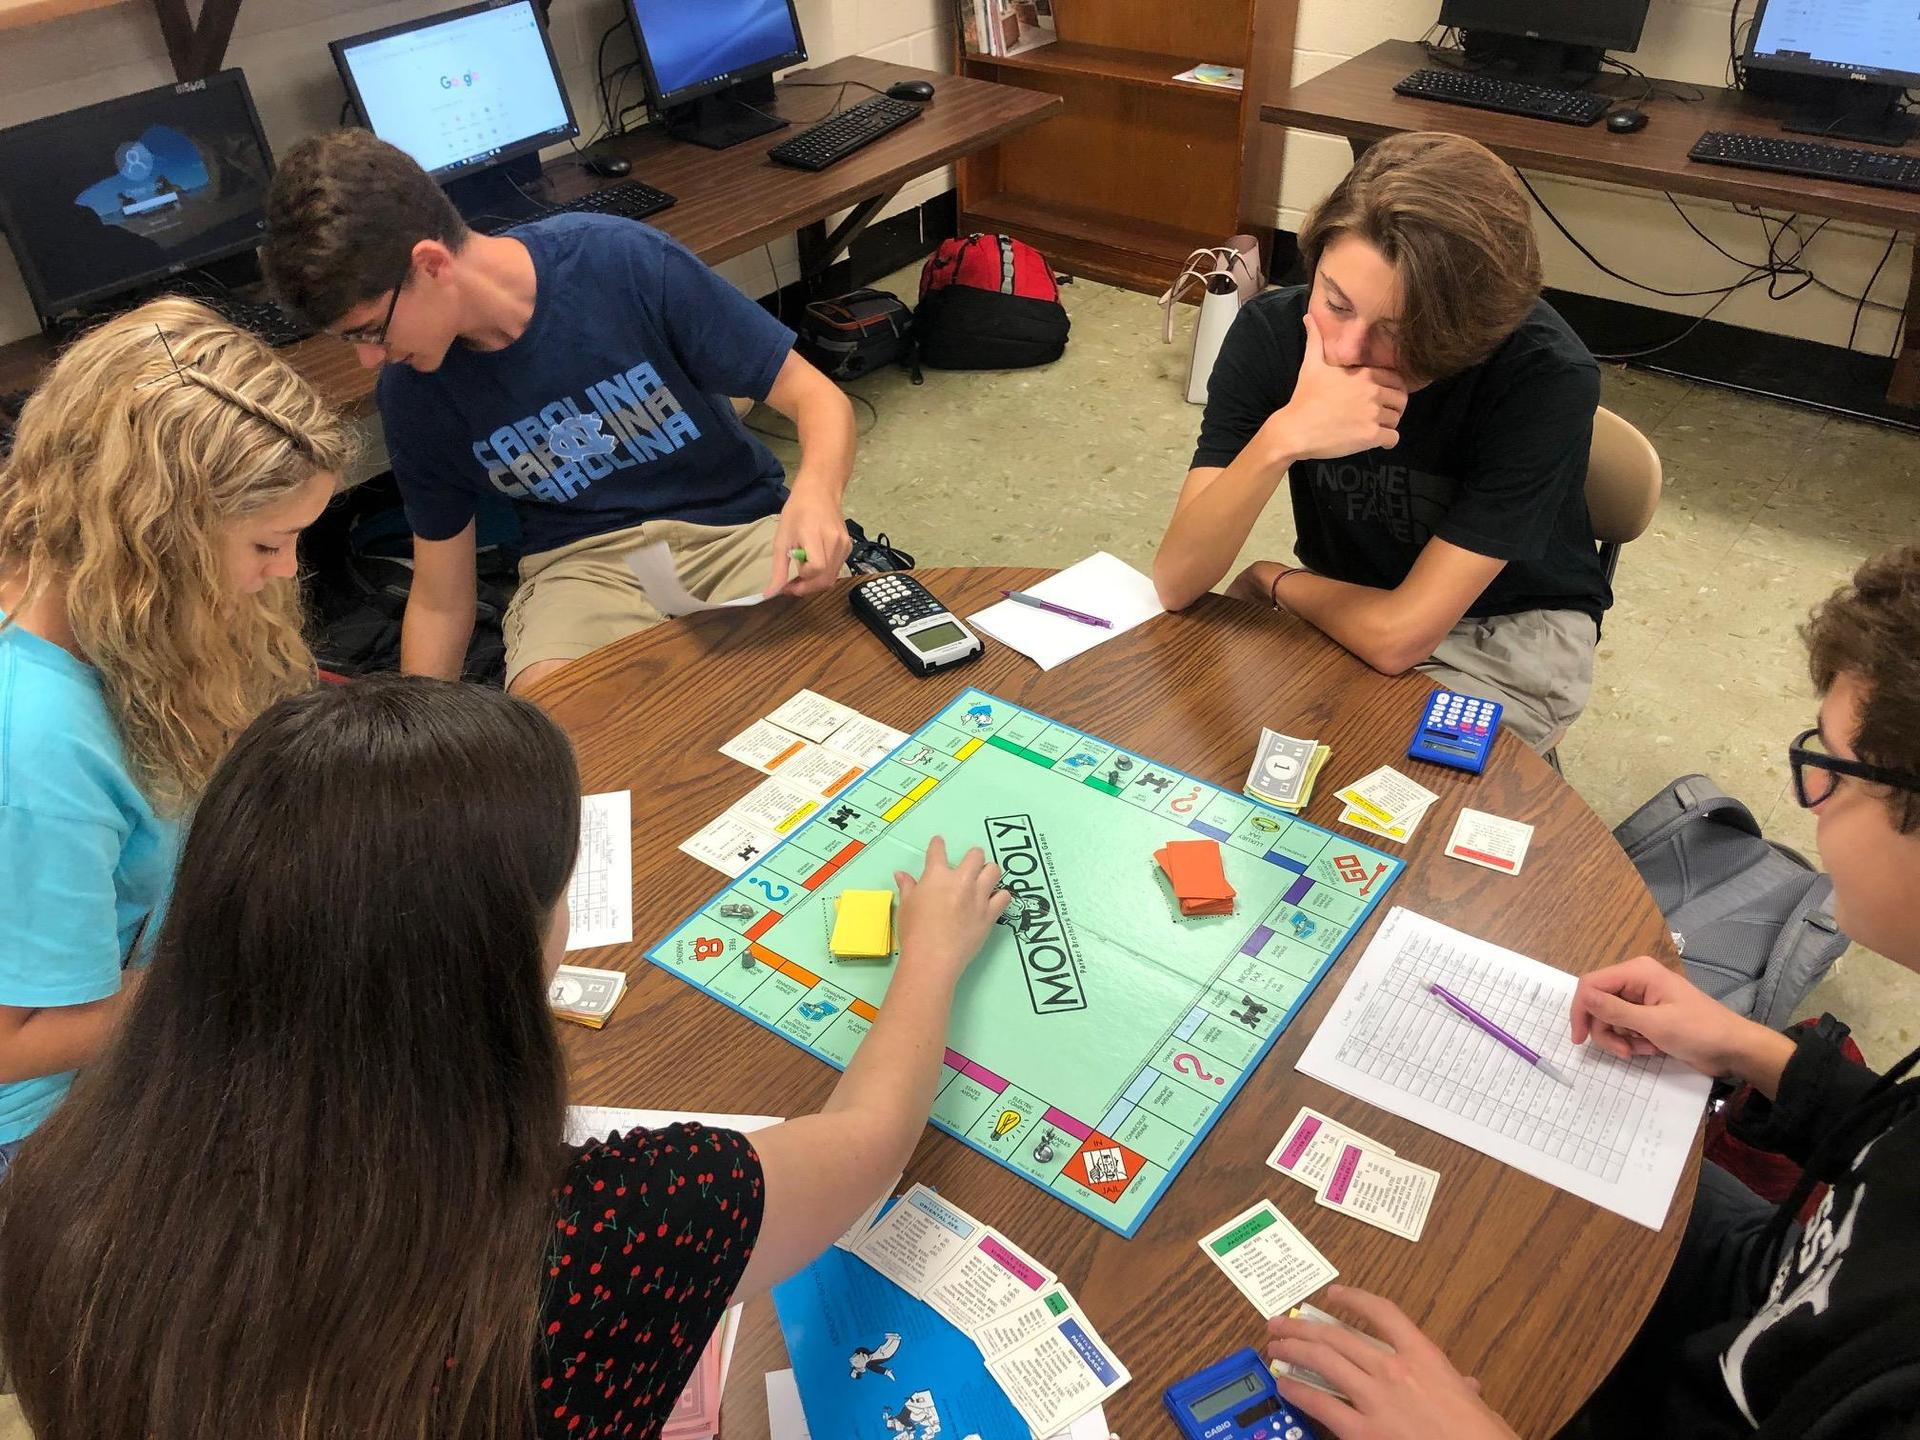 Personal Finance - Keeping a check register with Monopoly.